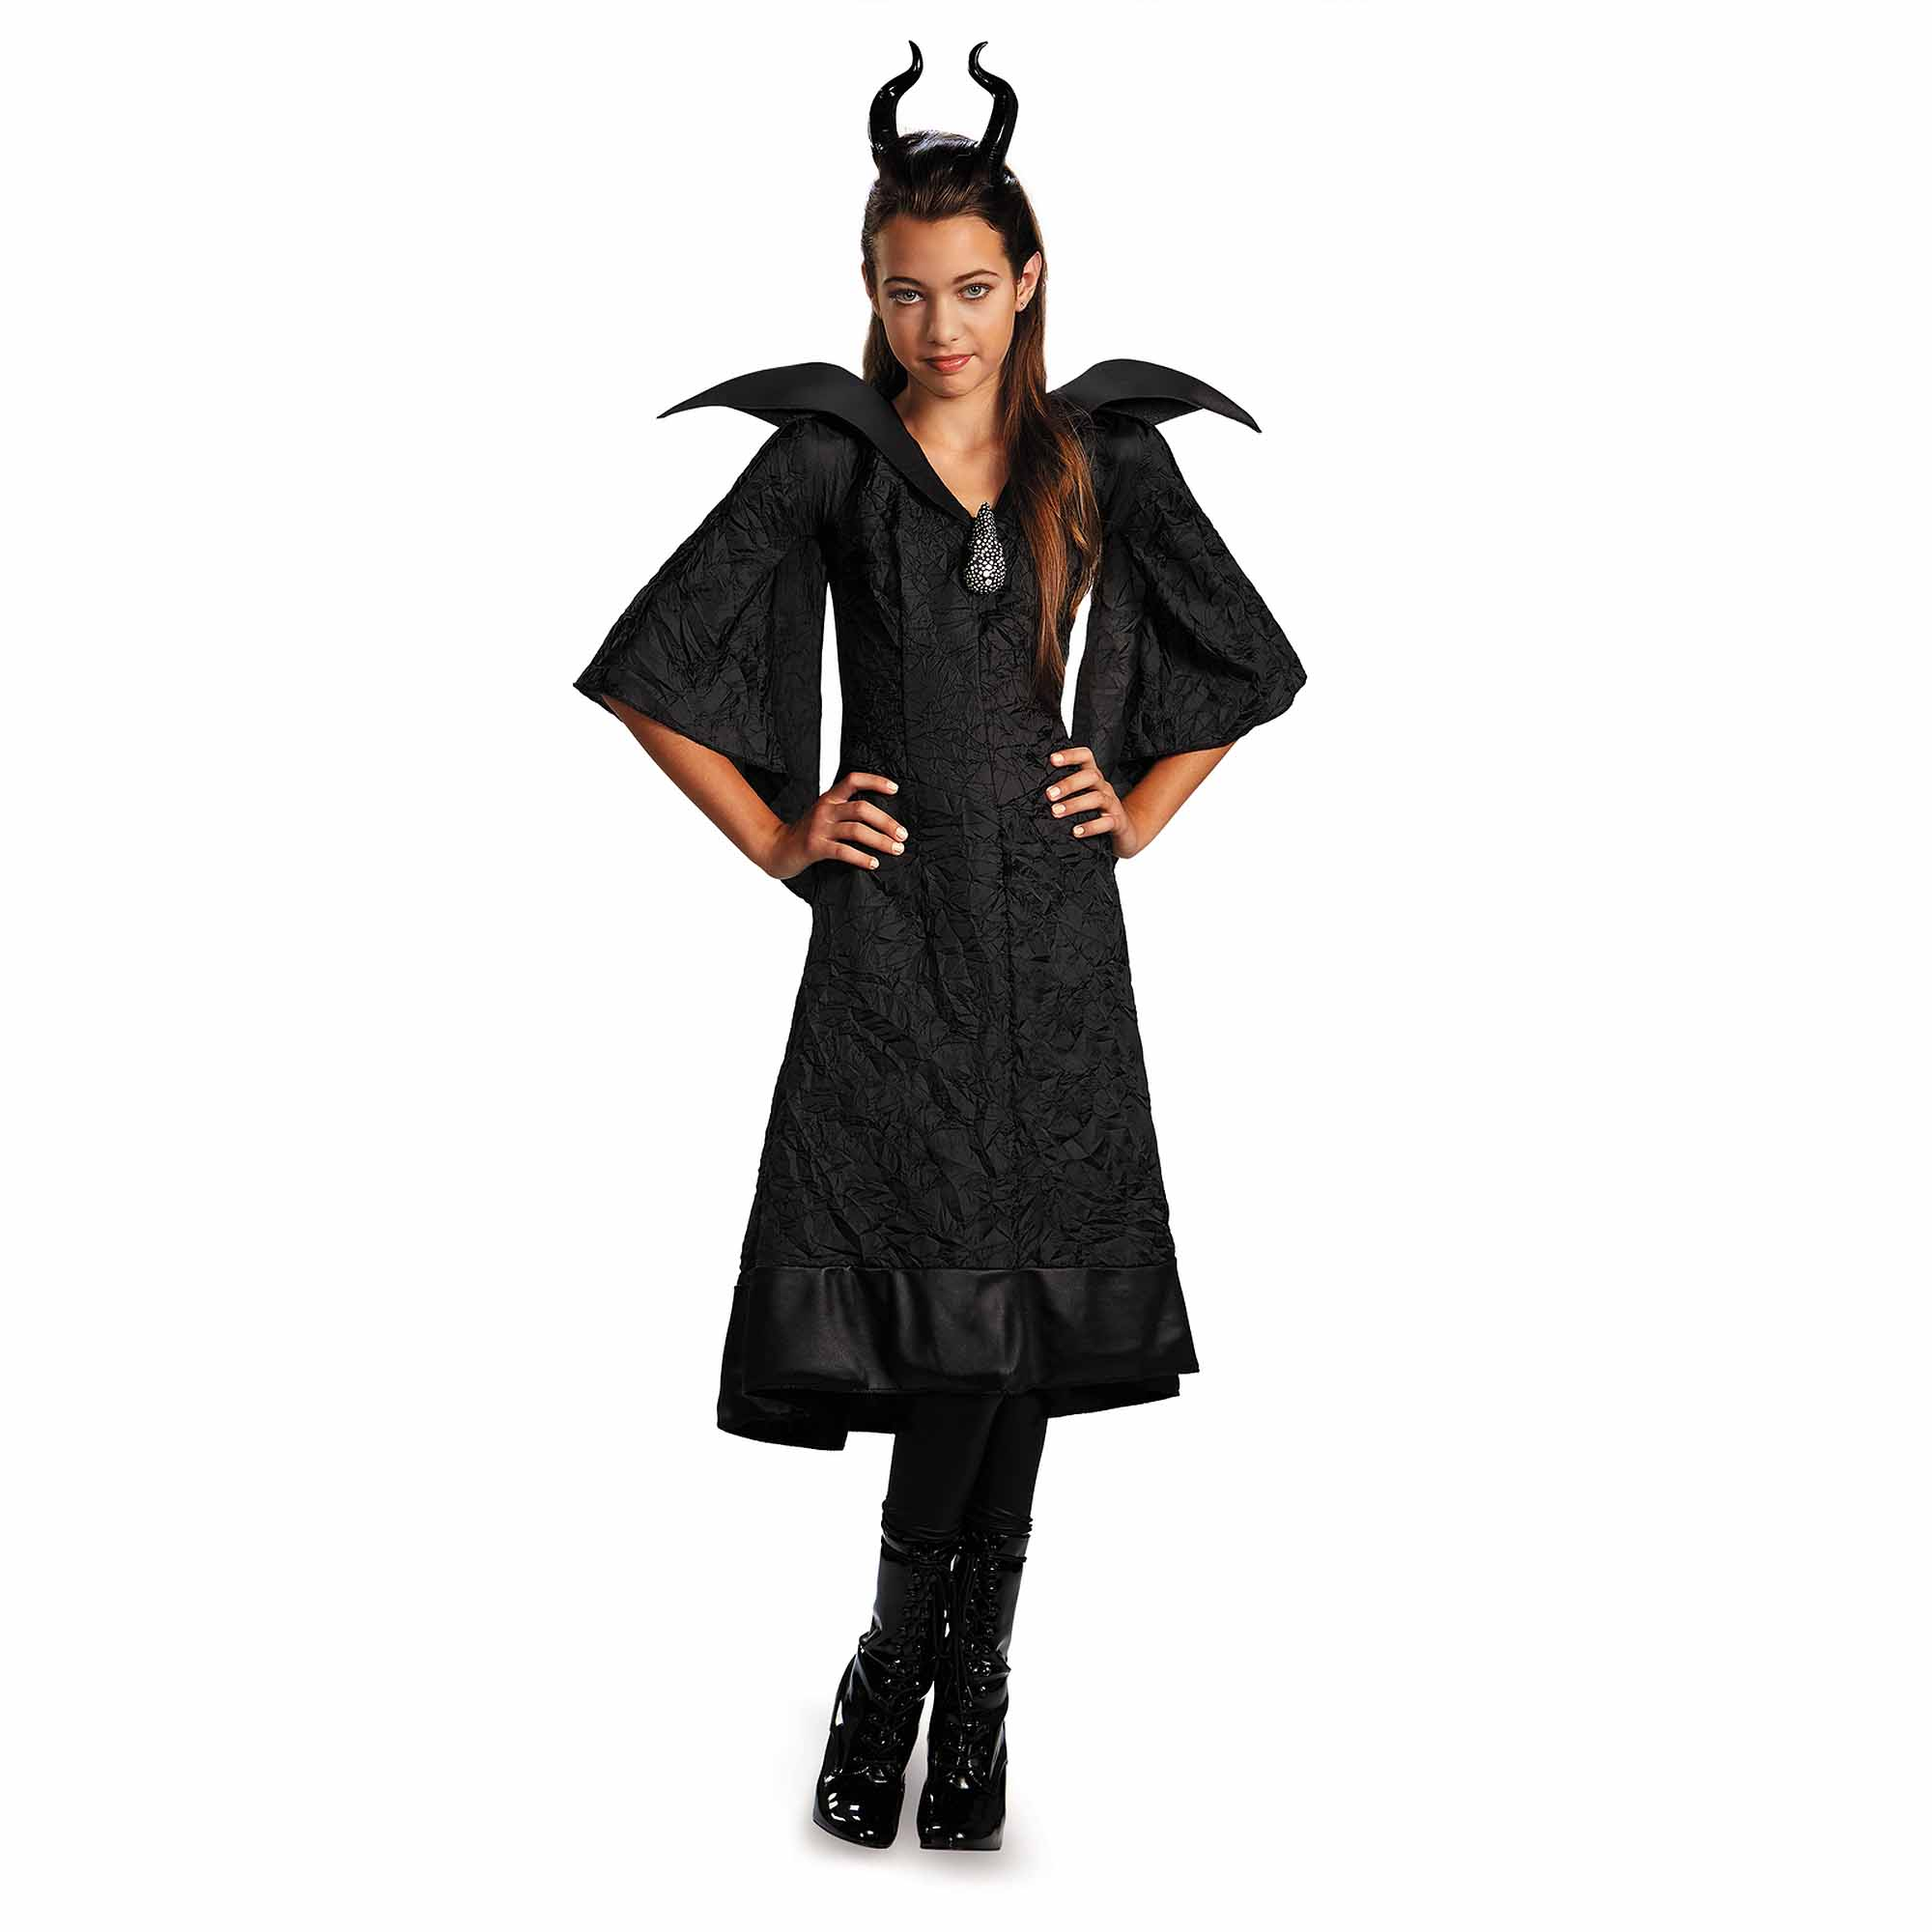 Maleficent costumes maleficent classic child halloween costume solutioingenieria Choice Image